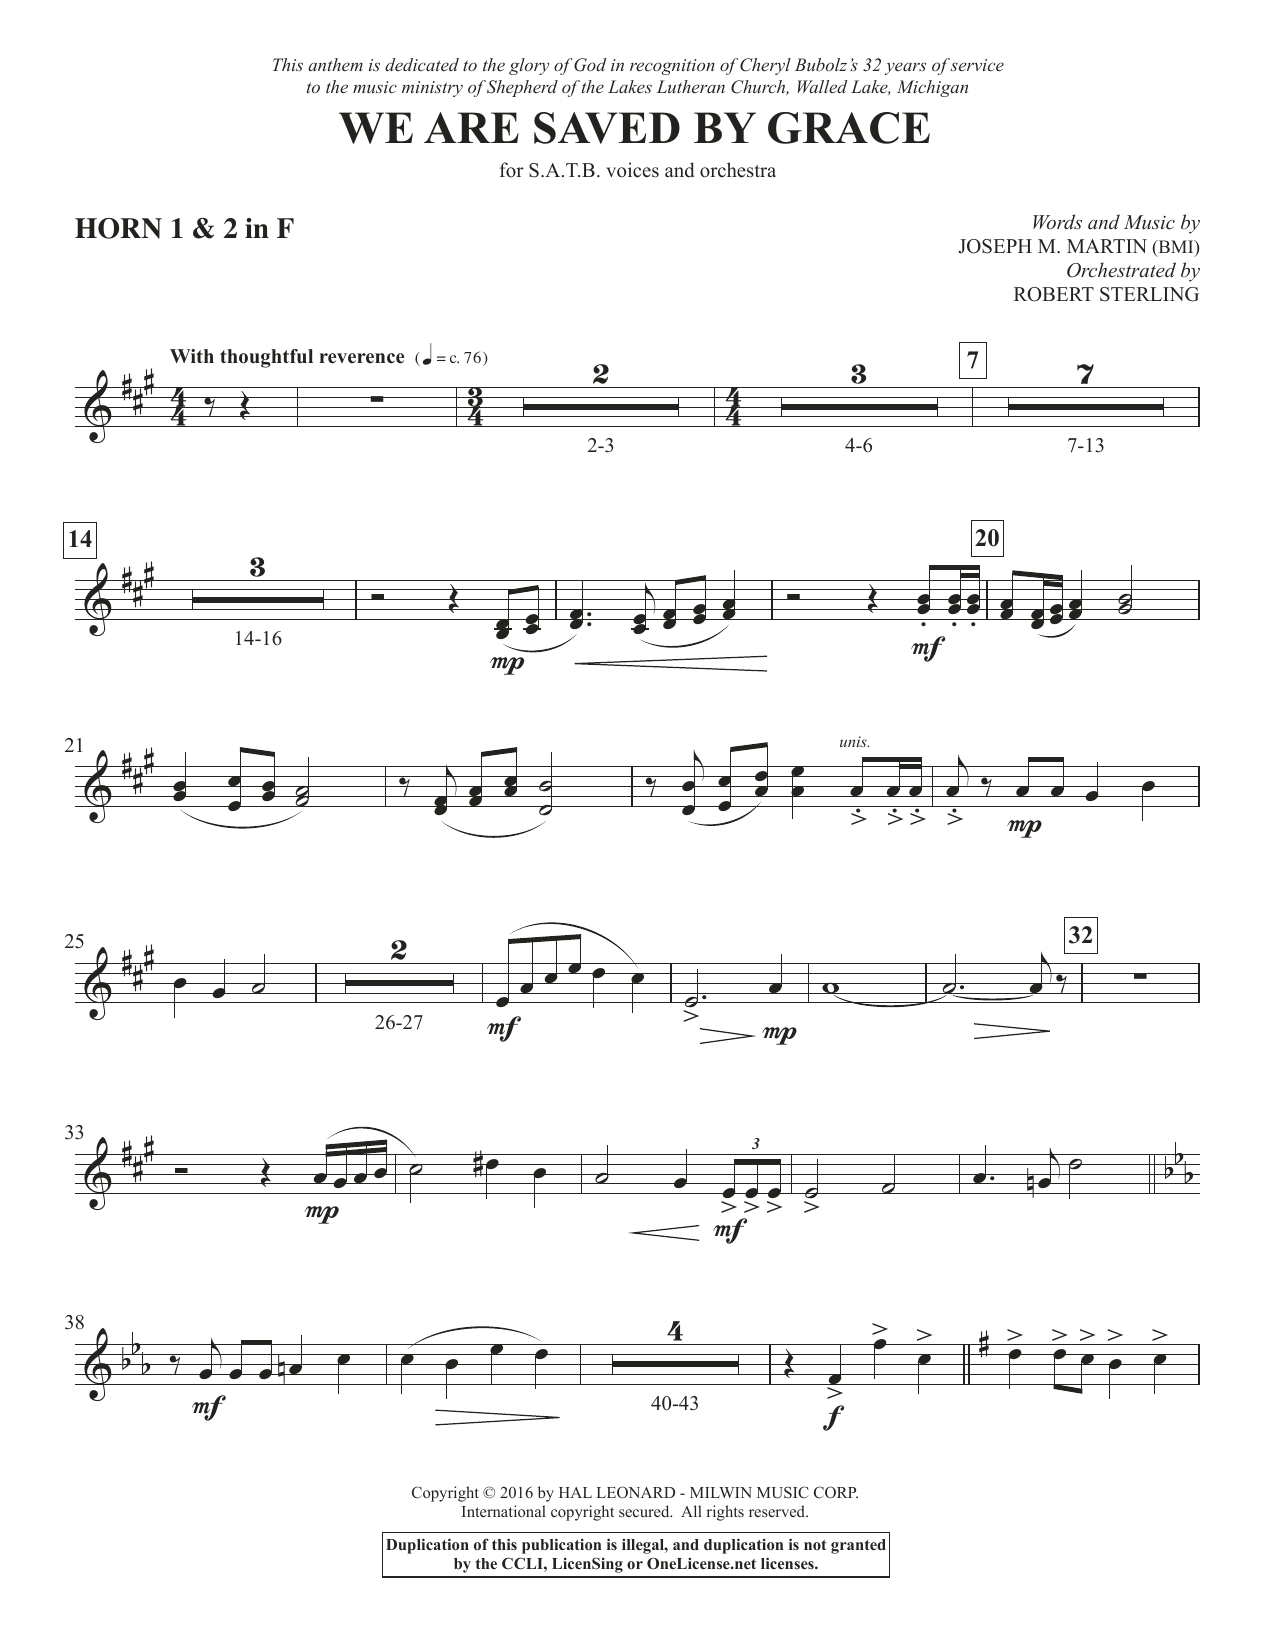 We Are Saved by Grace - F Horn 1 & 2 Sheet Music